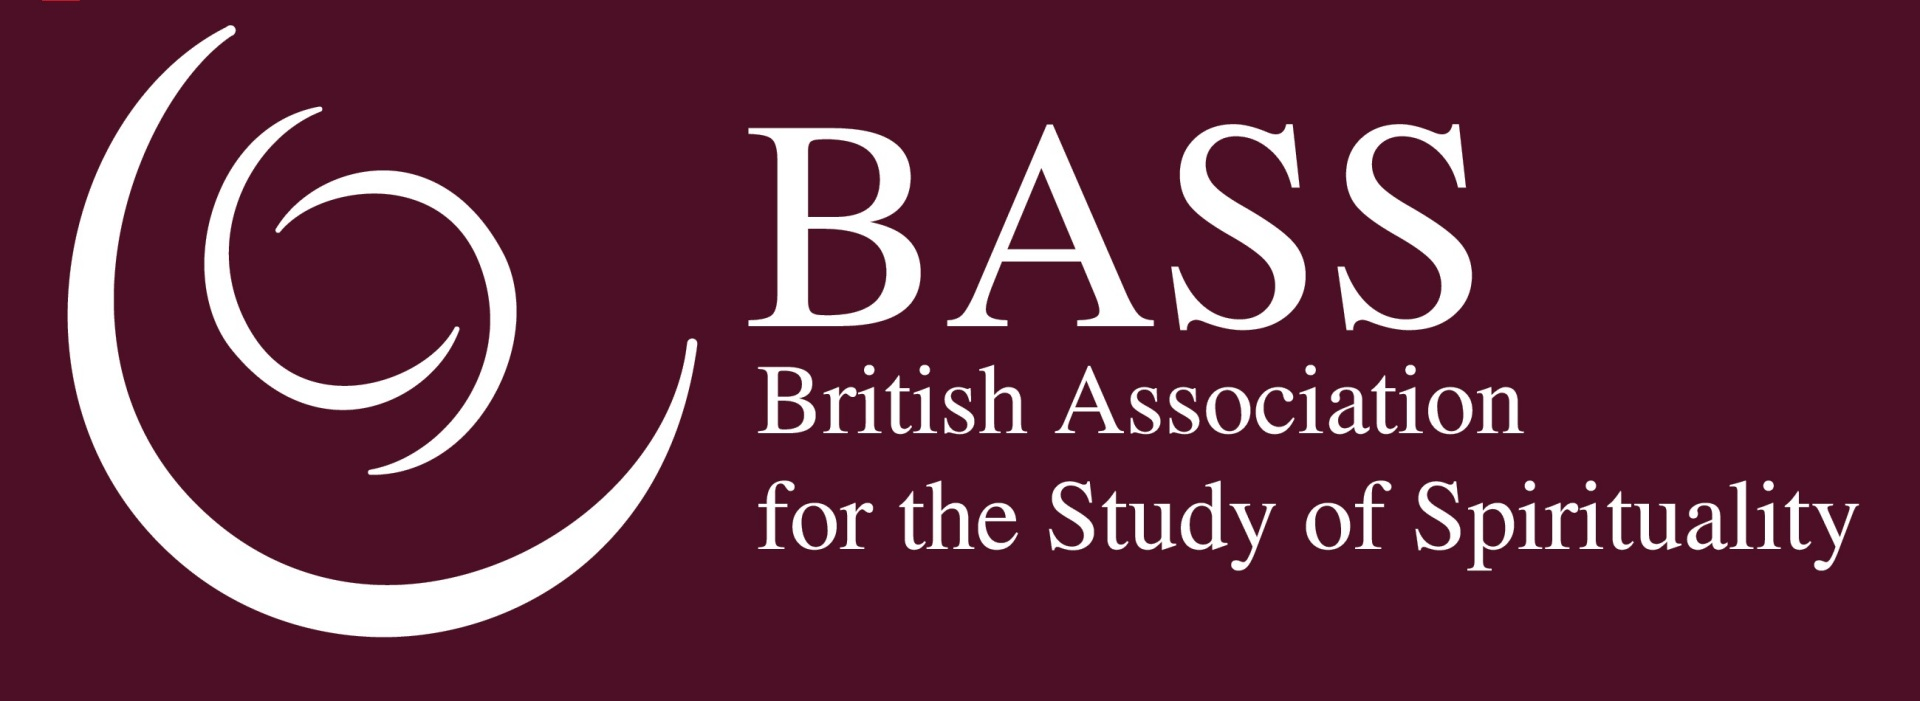 British Association for the Study of Spirituality